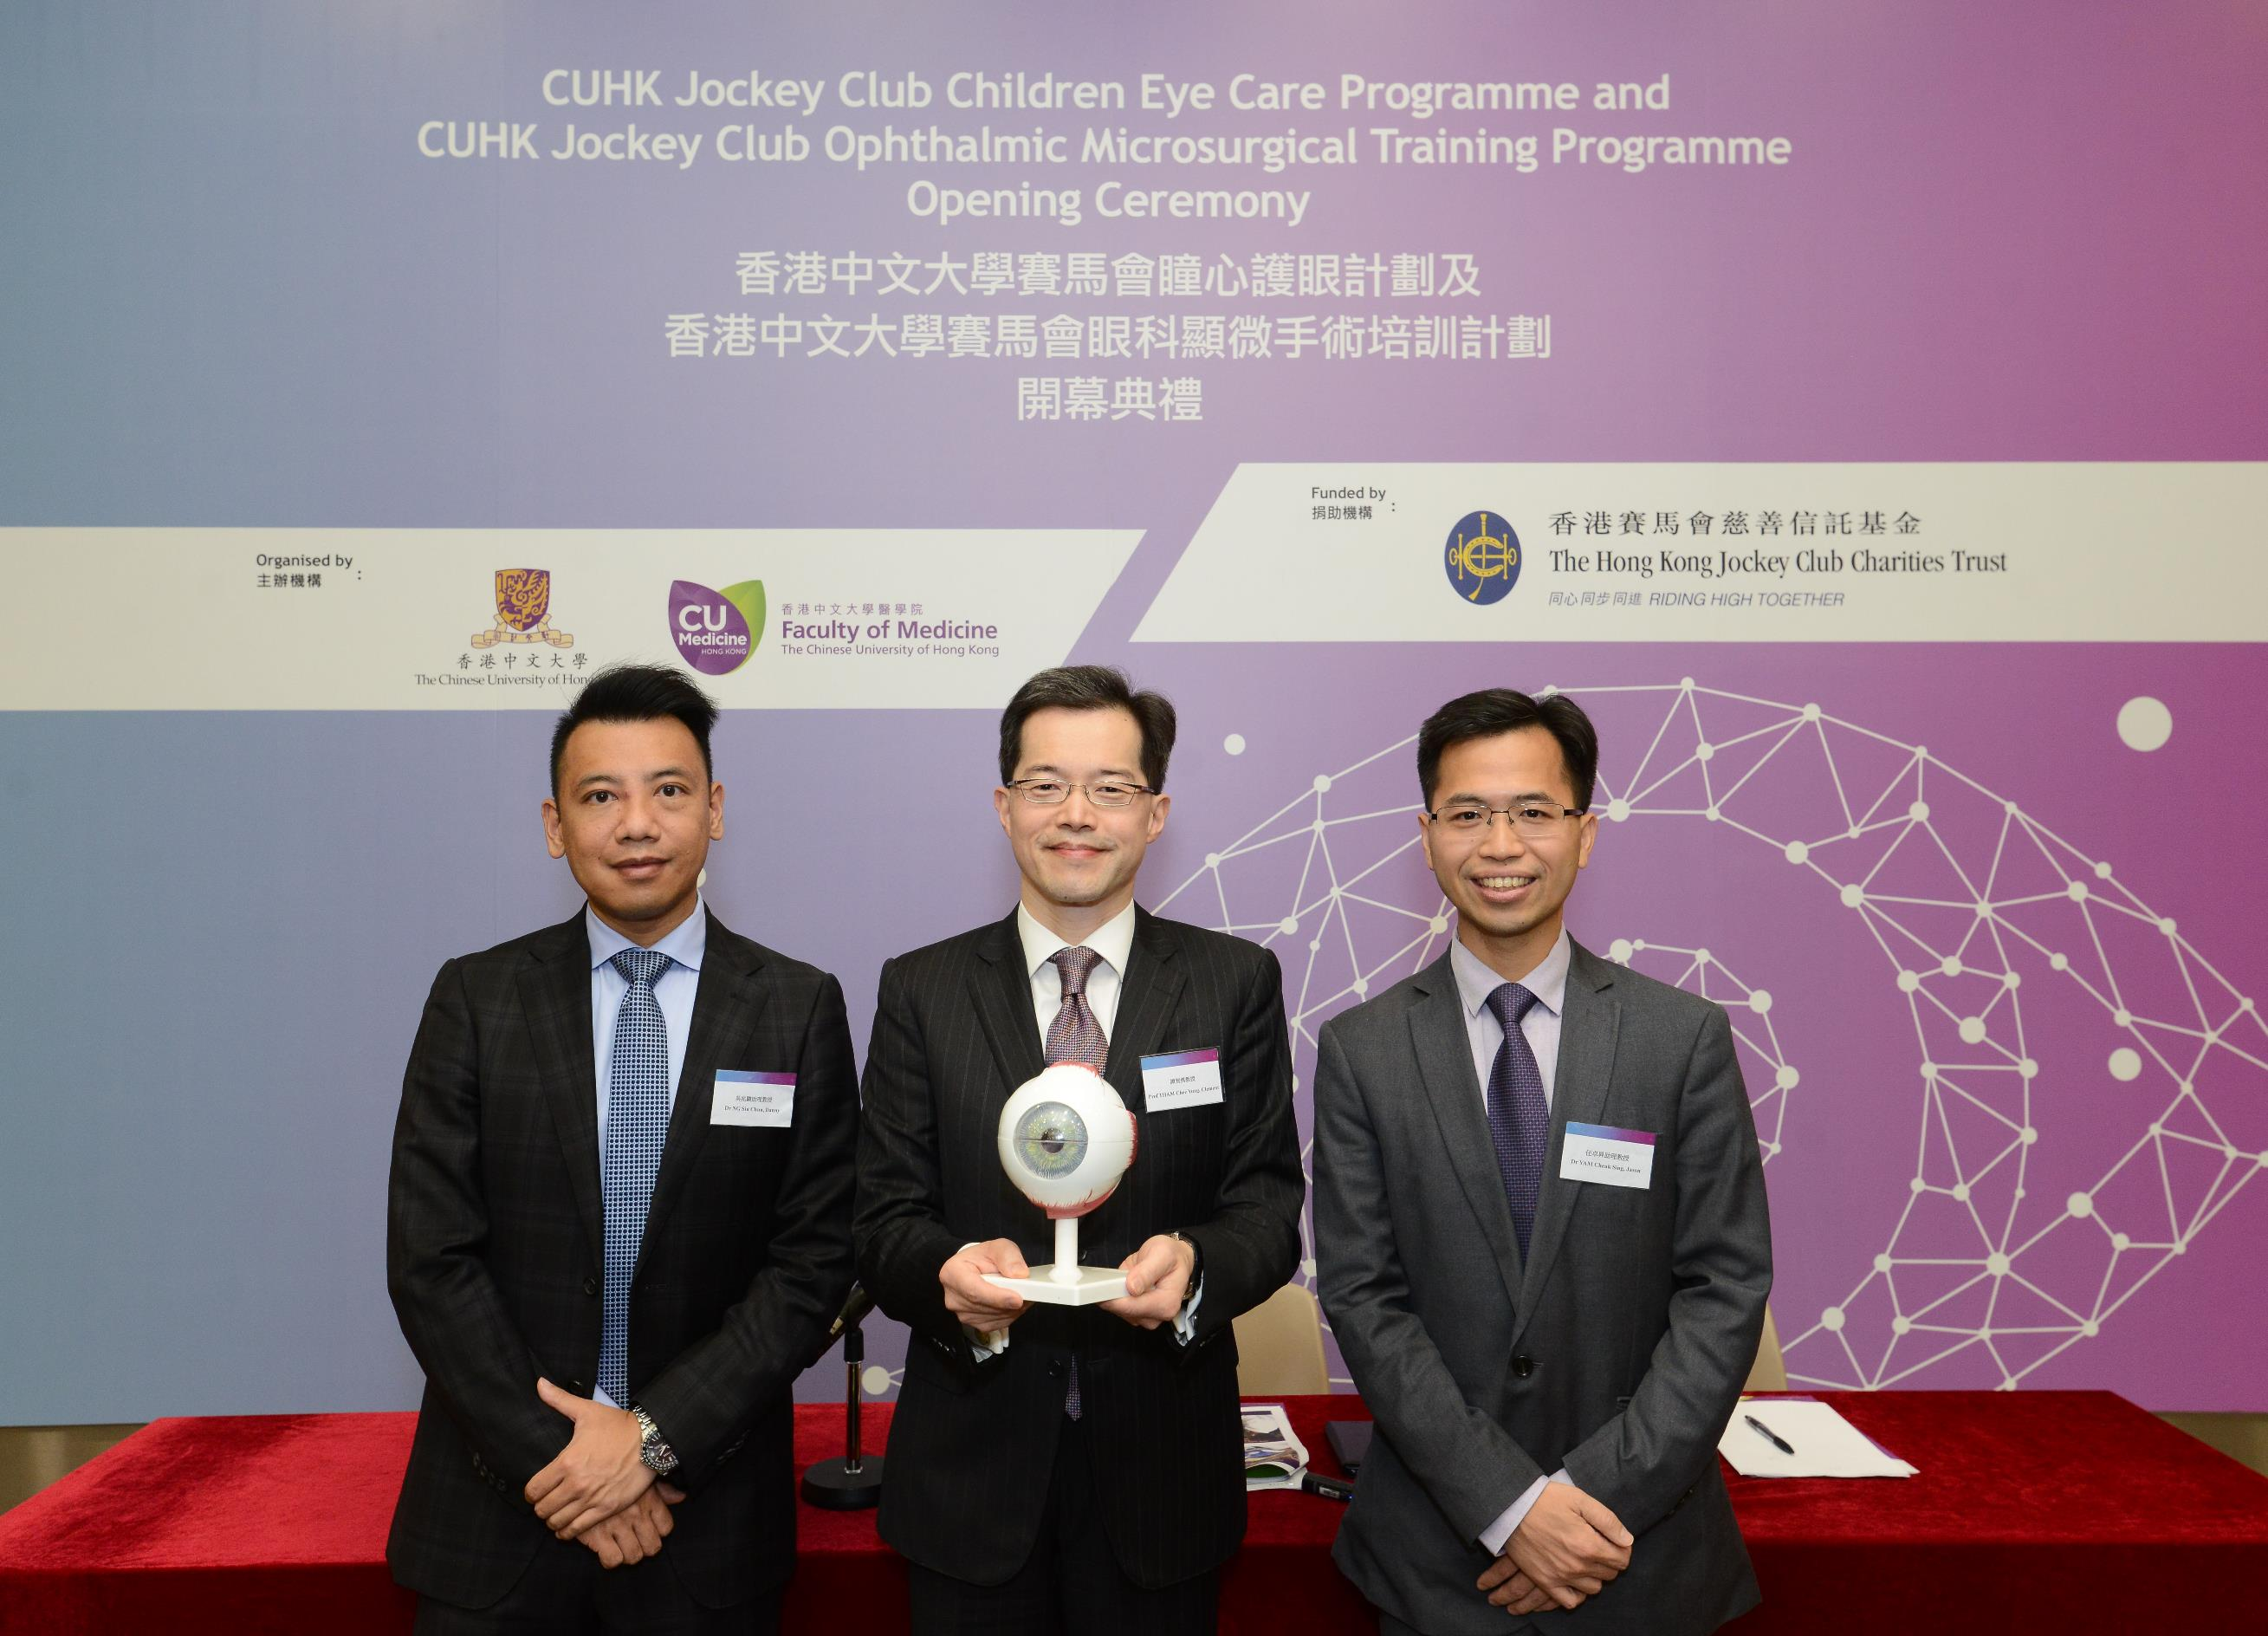 The CUHK Medicine ophthalmology team's Children's Eye Screening Programme reveals that for those children whose both parents are severely short-sighted, their risk of developing the same condition will be up to 12 folds when compared to children whose parents are not short-sighted. (From left) Assistant Professor Dr. Danny Siu Chun NG , Department Chairman Professor Clement Chee Yung THAM and Assistant Professor Dr. Jason Cheuk Sing YAM.